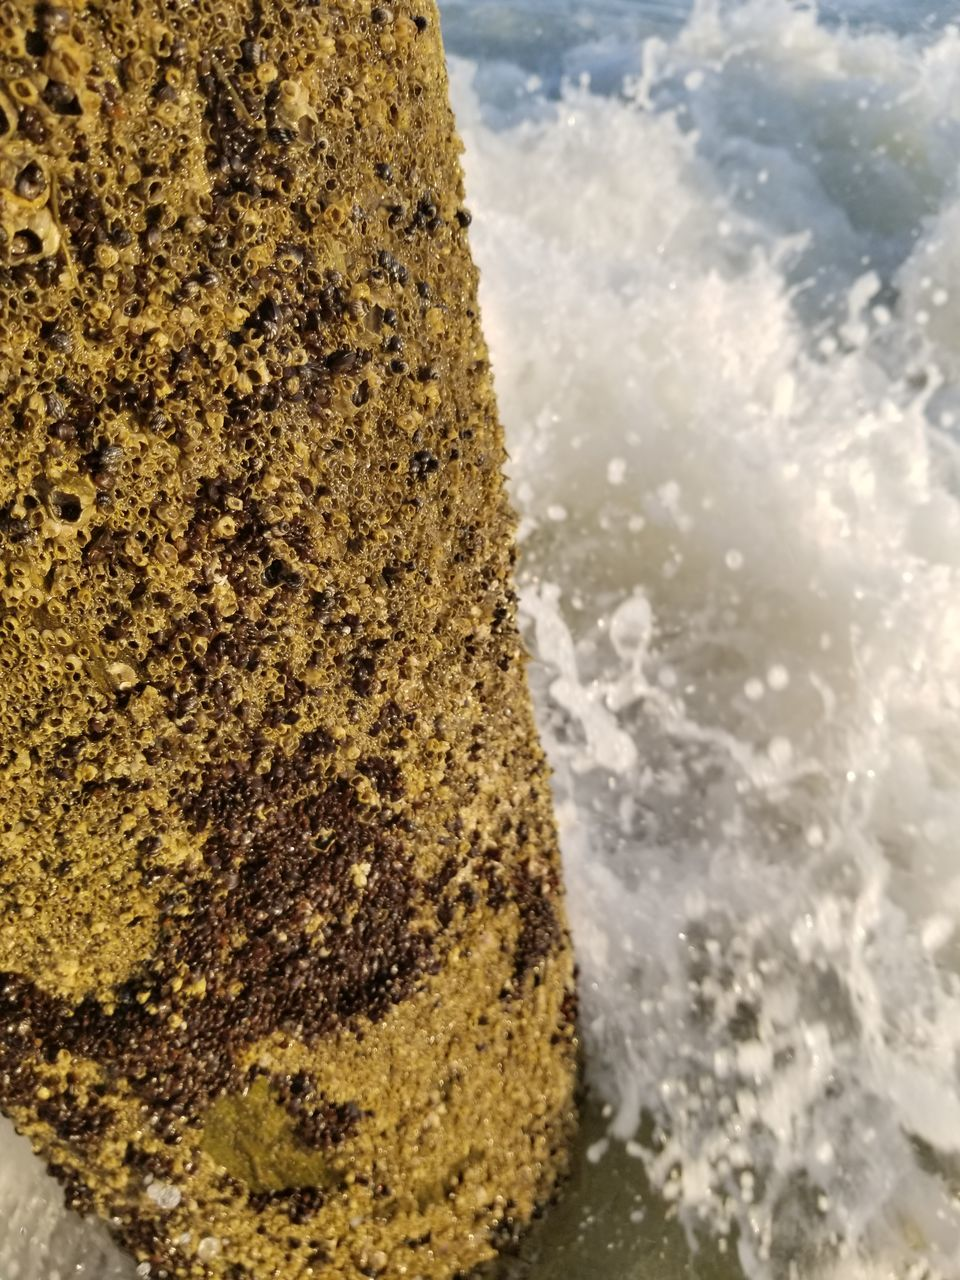 water, rock - object, no people, nature, day, outdoors, close-up, sea, beauty in nature